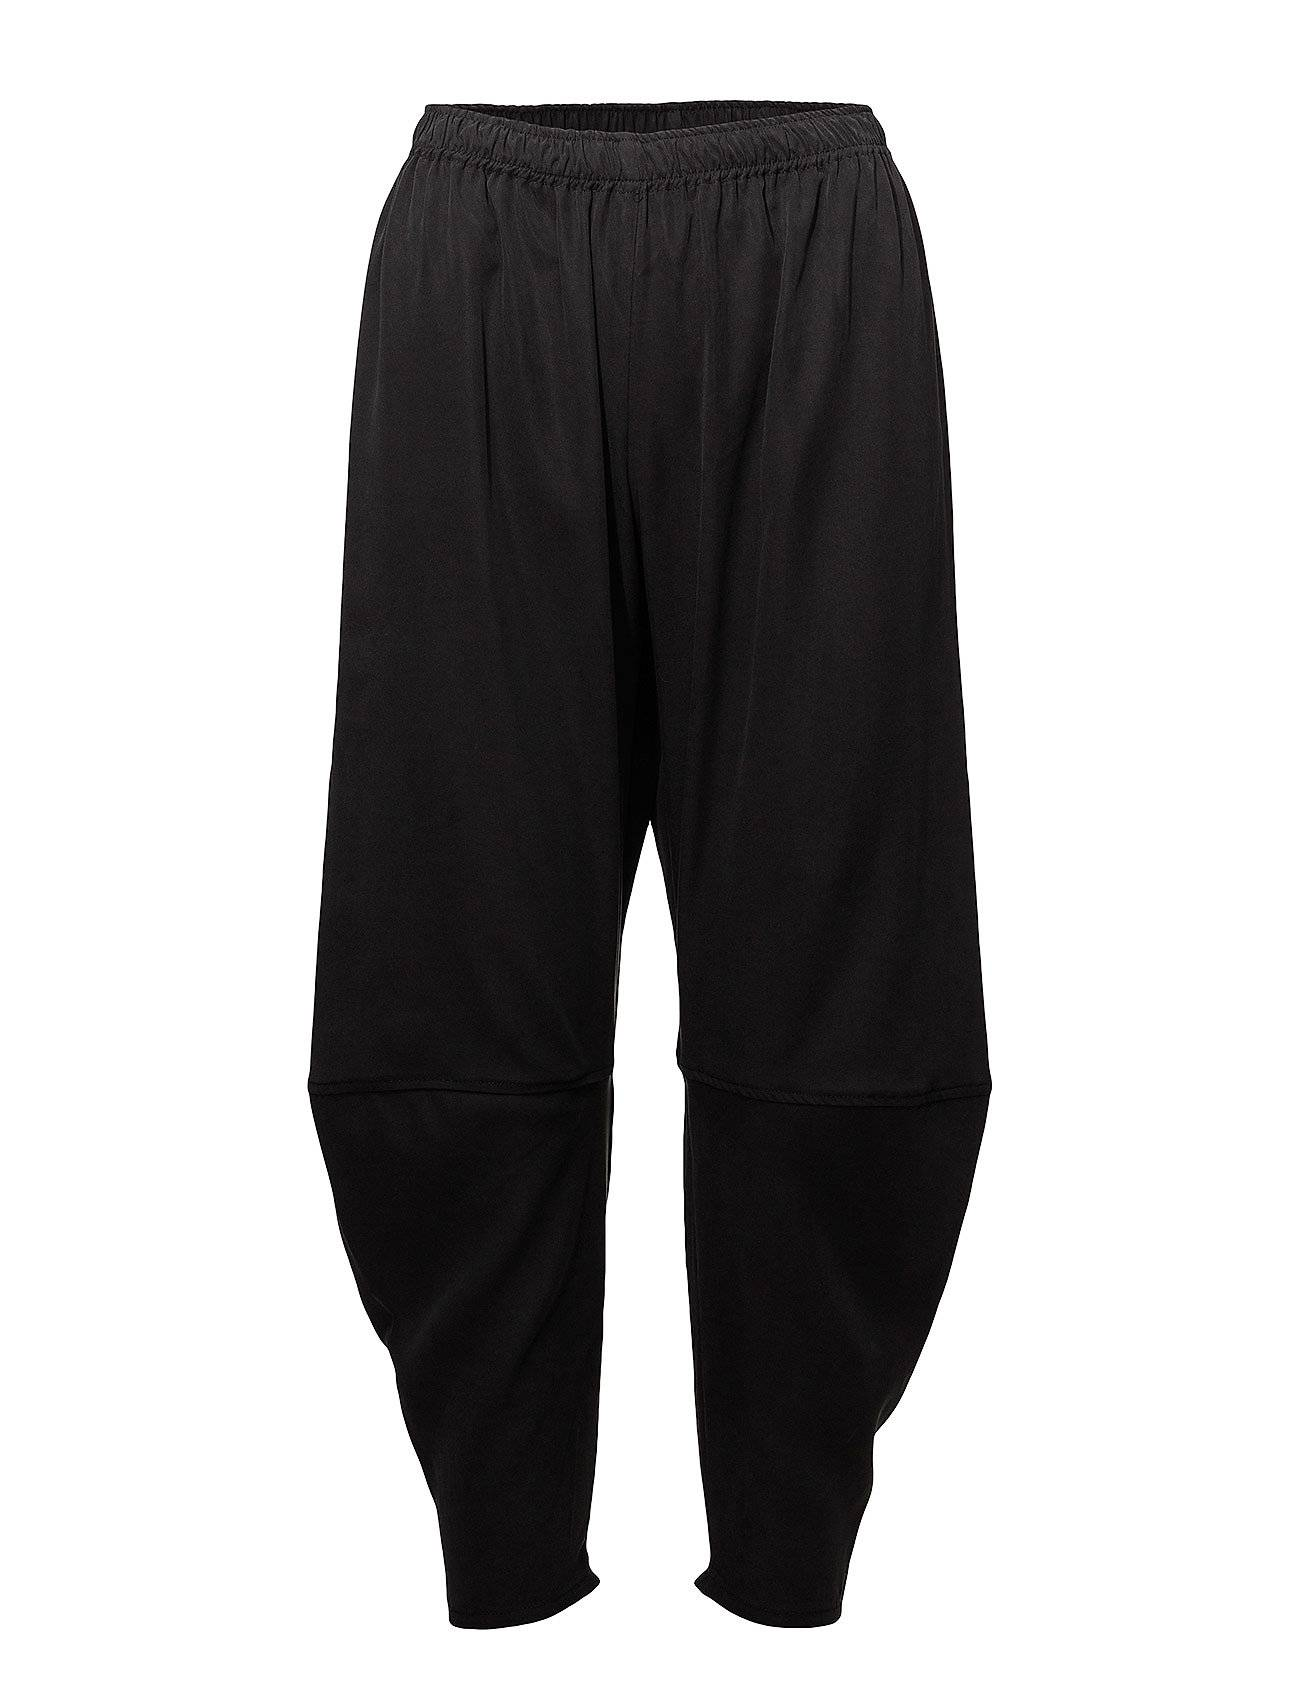 Diana Orving Curve Trousers